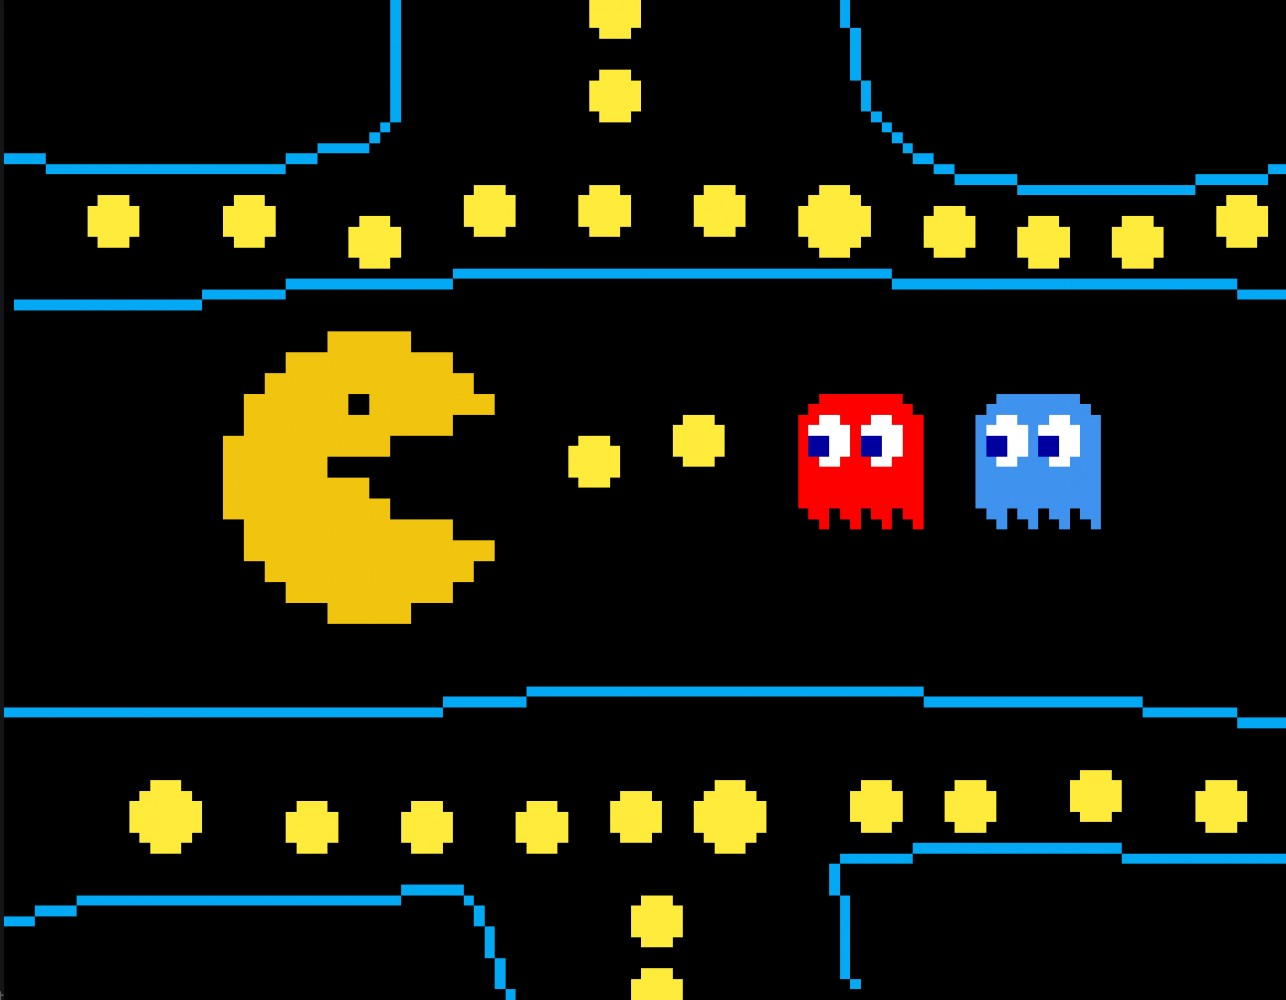 PAC man by Ernest11